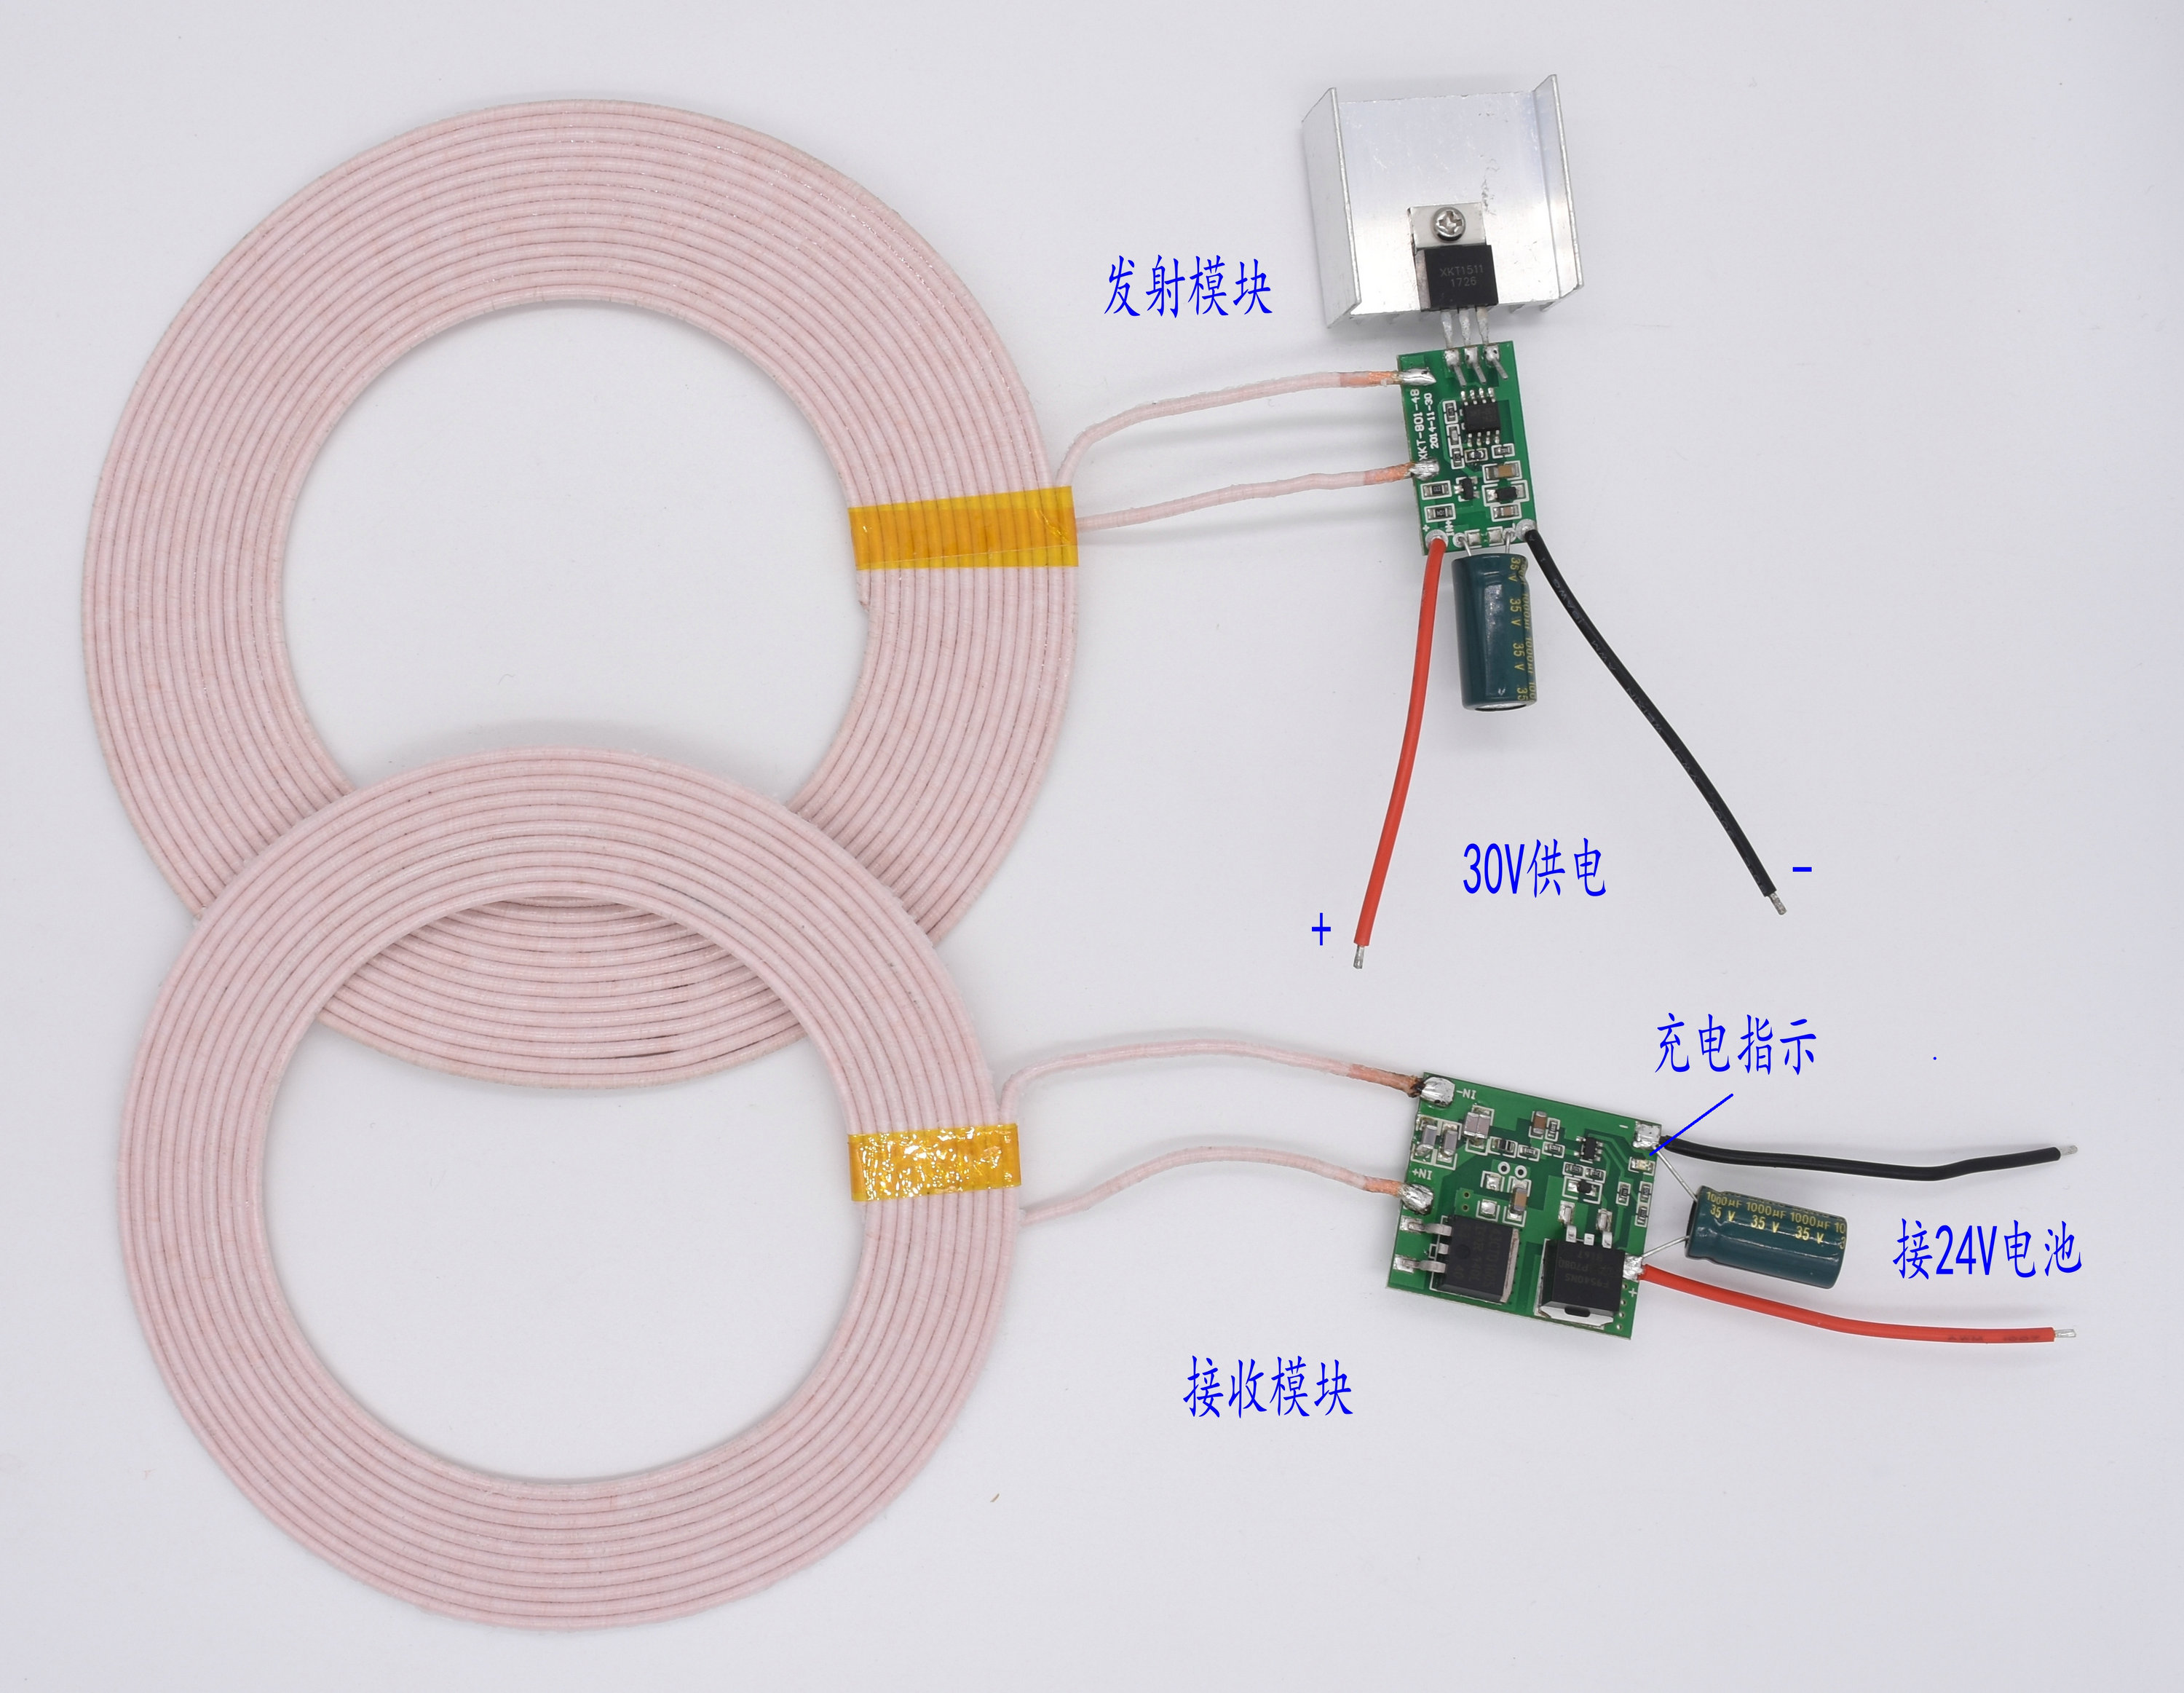 Transmit 32V to Receive and Output 24V2A Wireless Charging Module XKT801-31Transmit 32V to Receive and Output 24V2A Wireless Charging Module XKT801-31